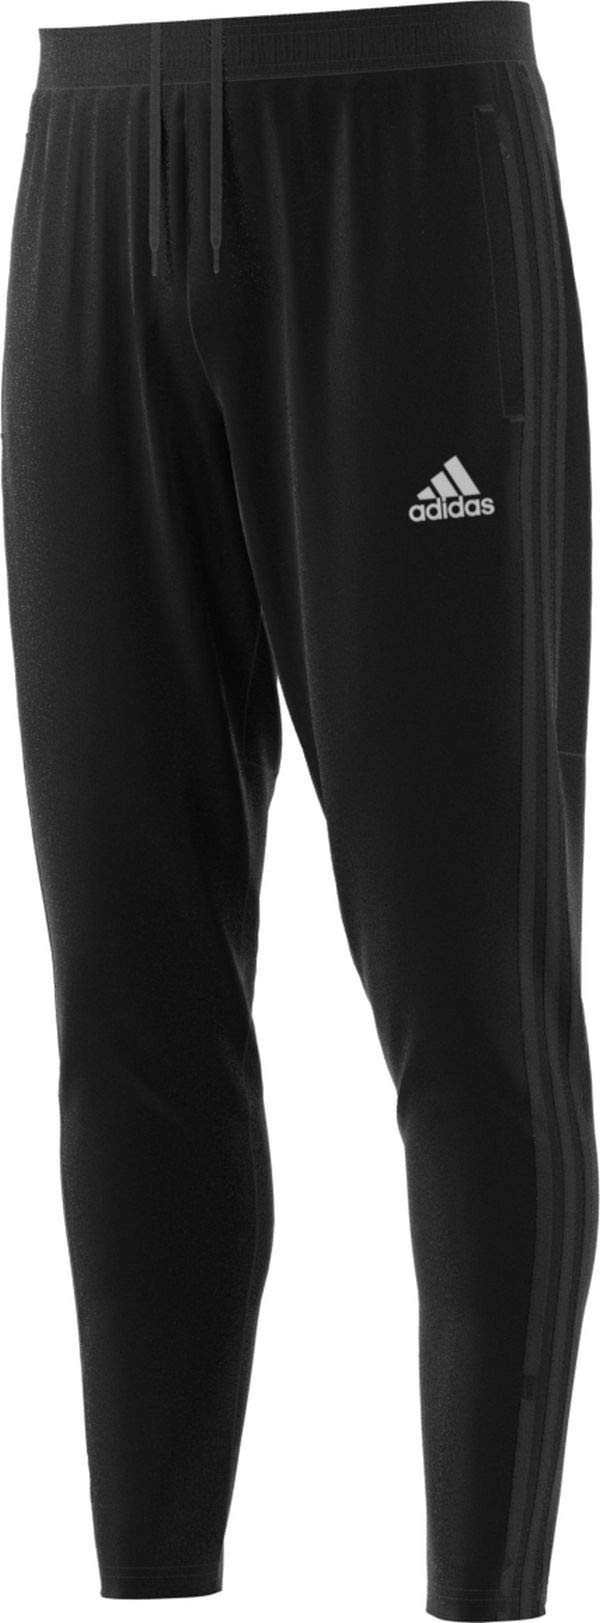 adidas Men's Condivo 18 Training Pant, Black/White, 3X-Large by adidas